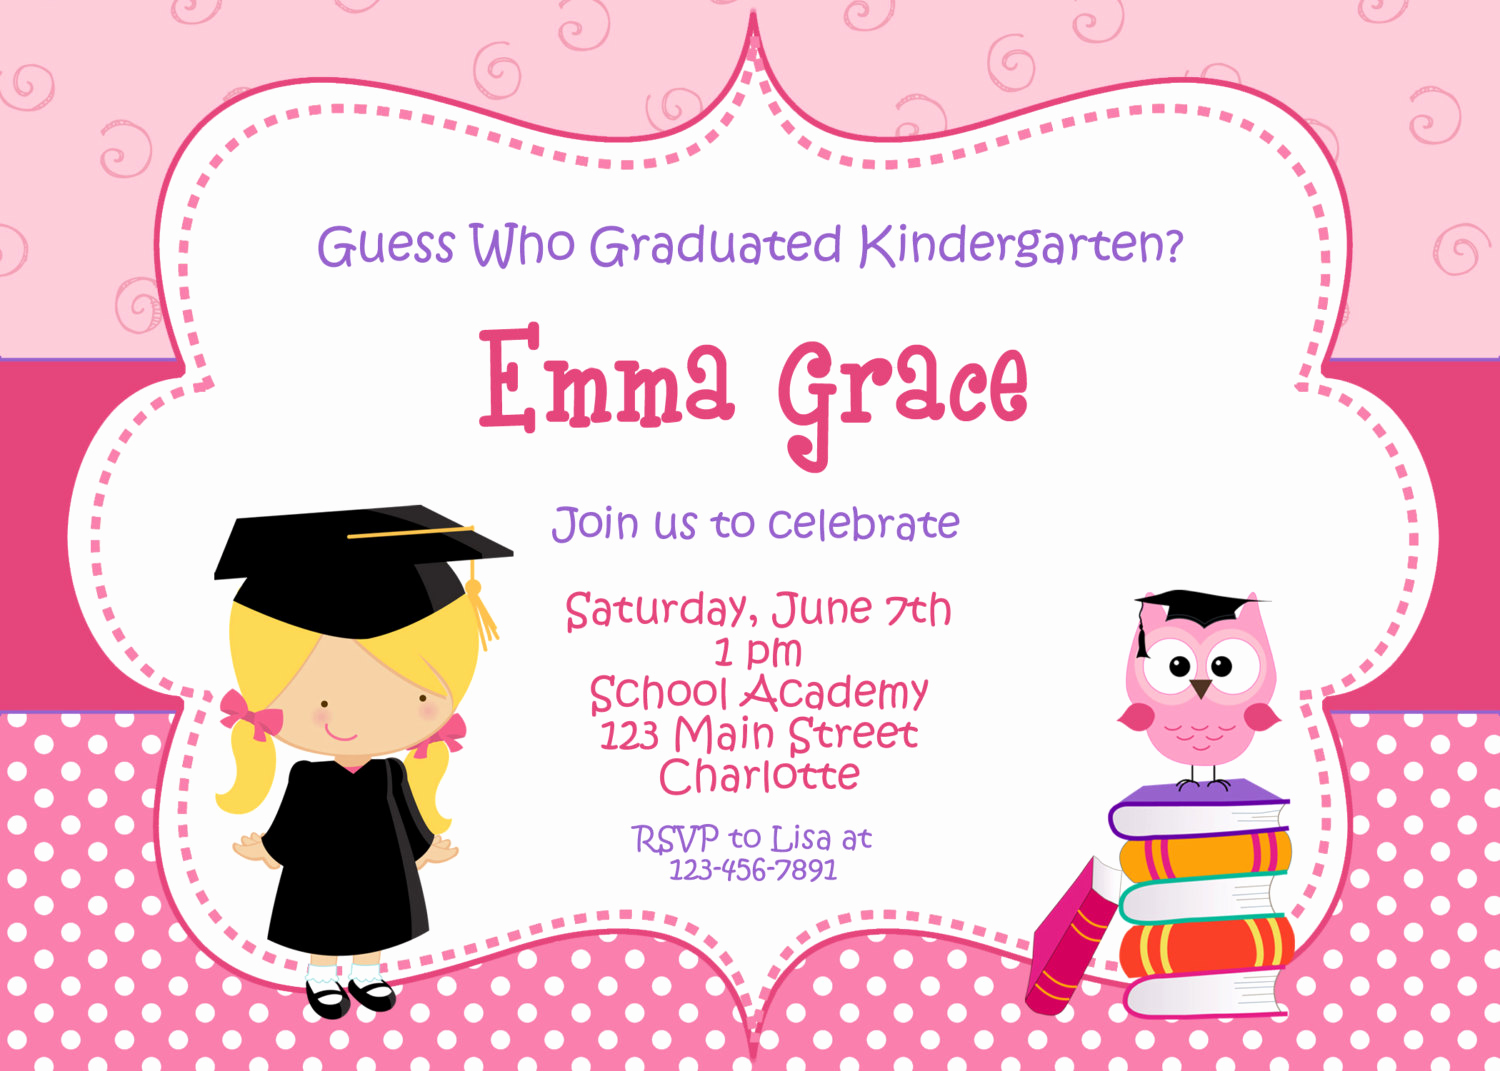 Pre School Graduation Invitation Inspirational Kindergarten Graduation Invitation Graduation Preschool